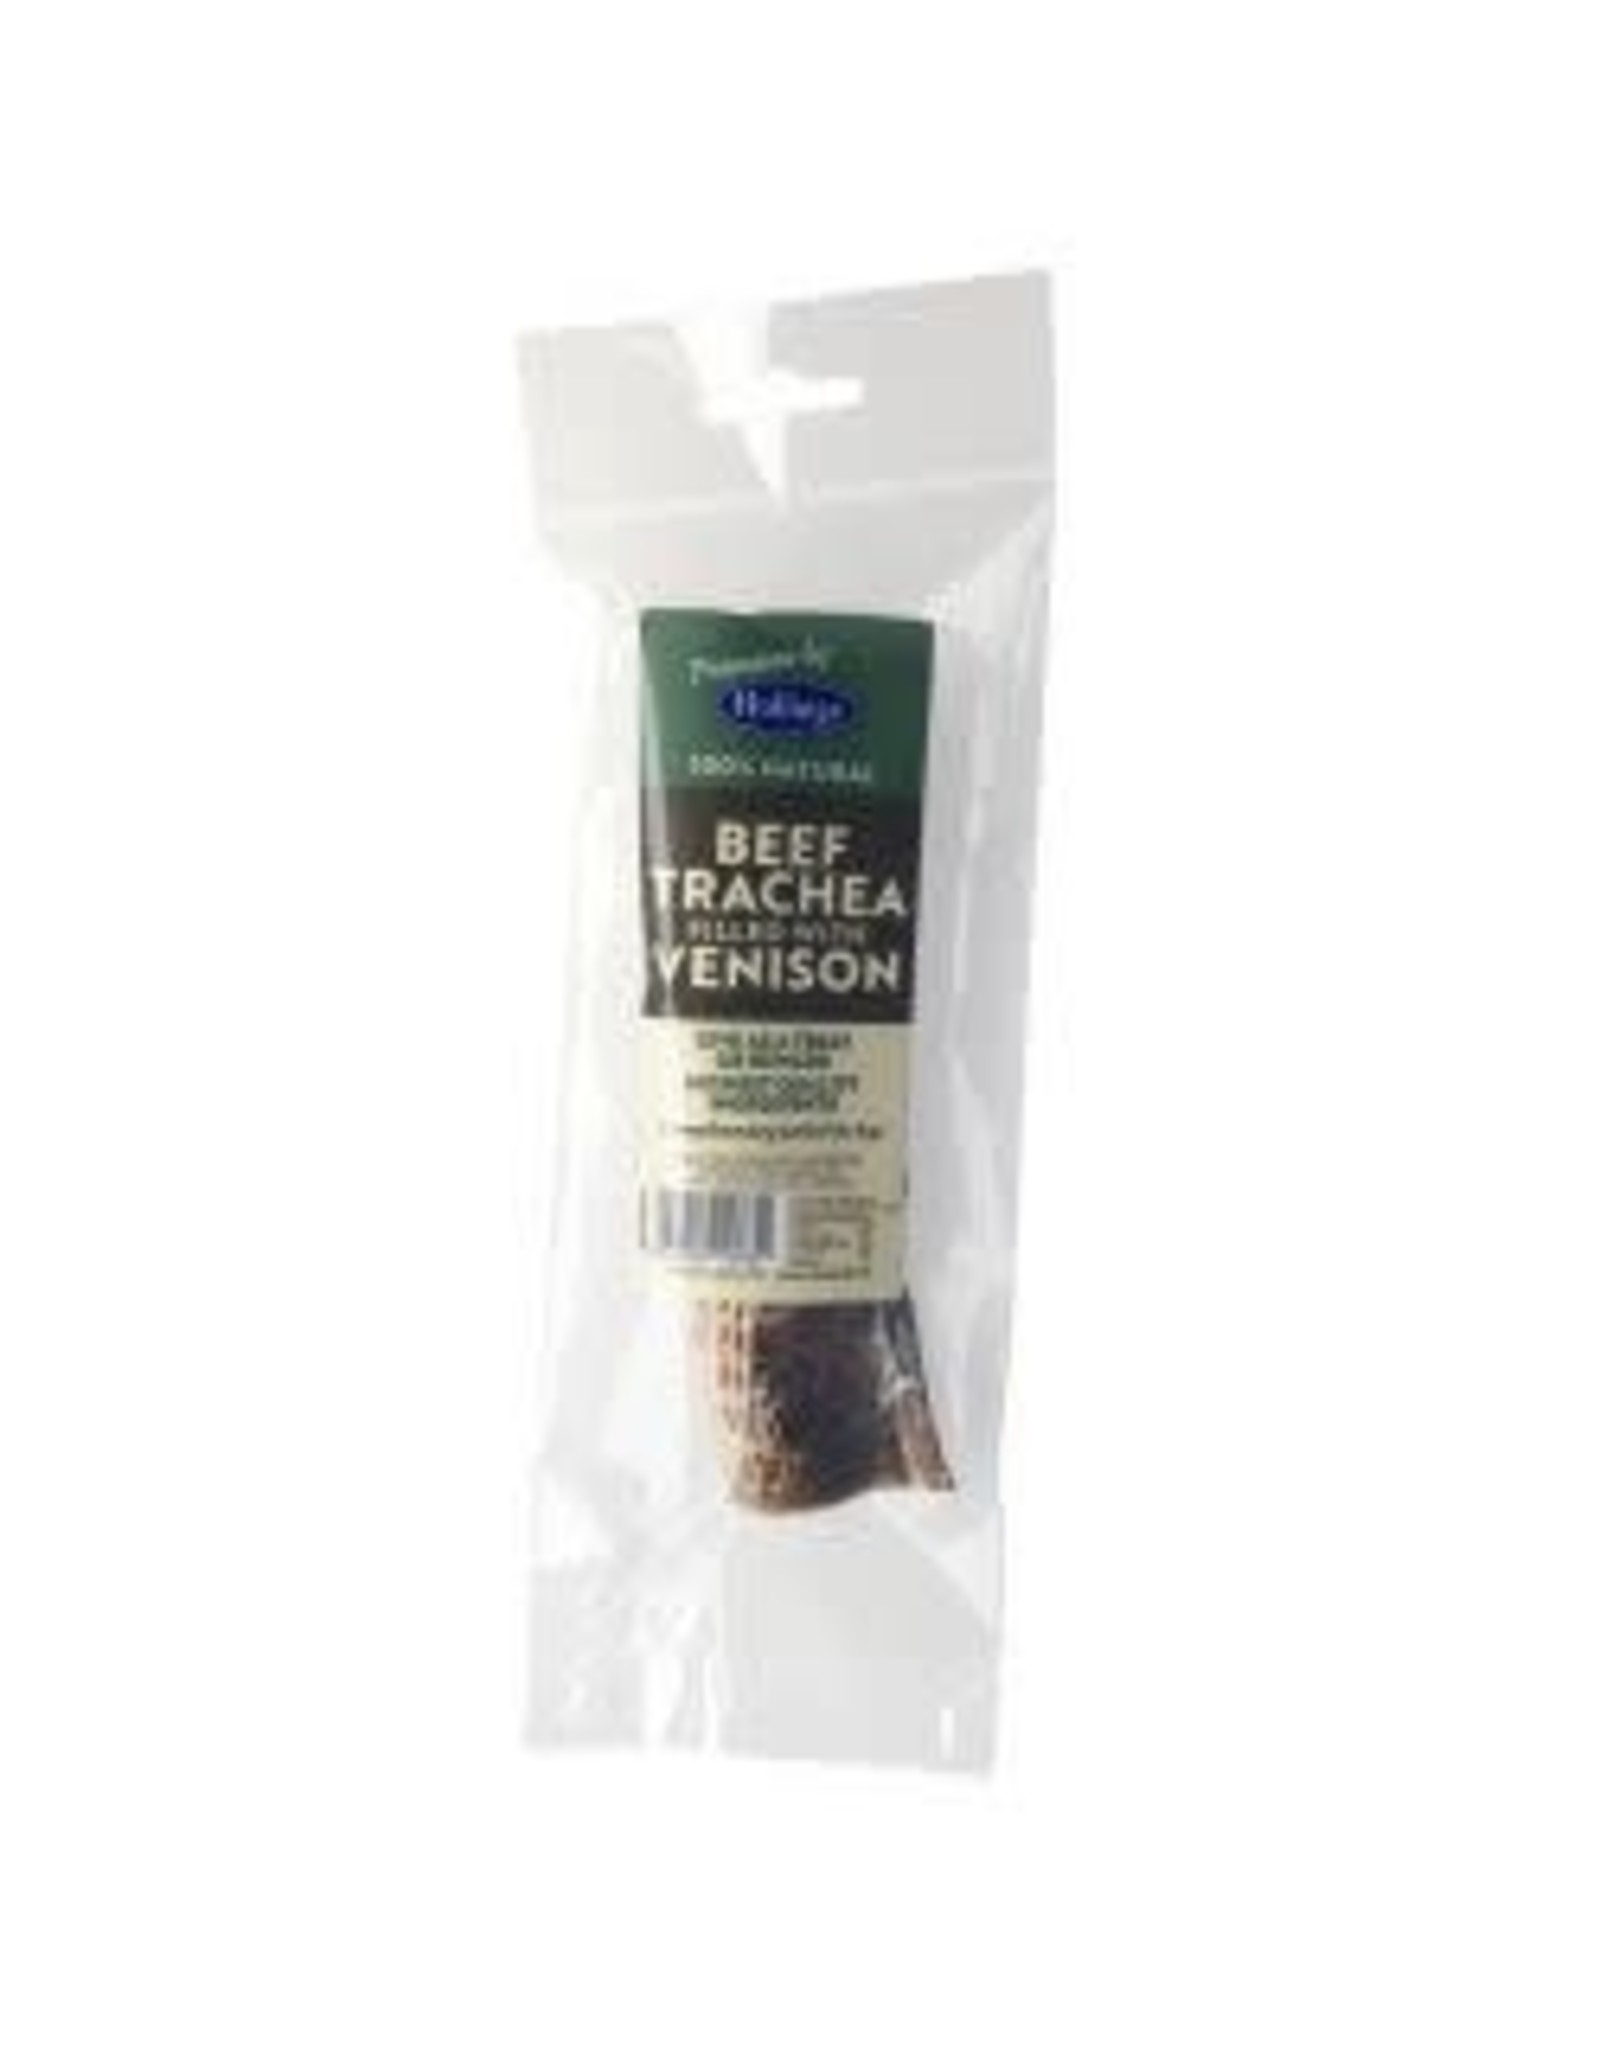 Hollings Holling Trachea Venison Filled 1 Pack